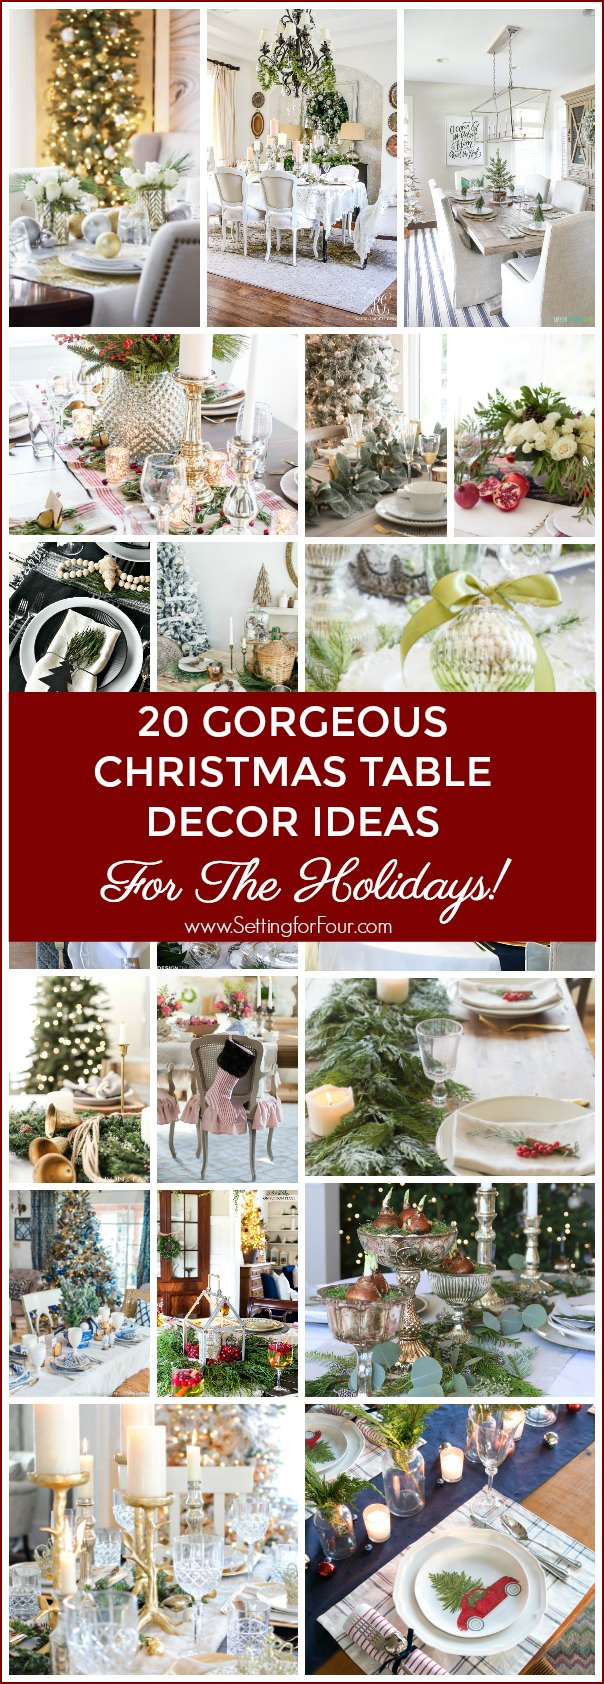 Add festive flair to your holiday table with these 20 Gorgeous Christmas Table Decor Ideas! See tablescapes with neutral, red, blue and metallic color palettes. Lots of table decorating tips and ideas using natural greenery, ornaments and flowers too! These are perfect table decorating ideas for winter weddings as well!